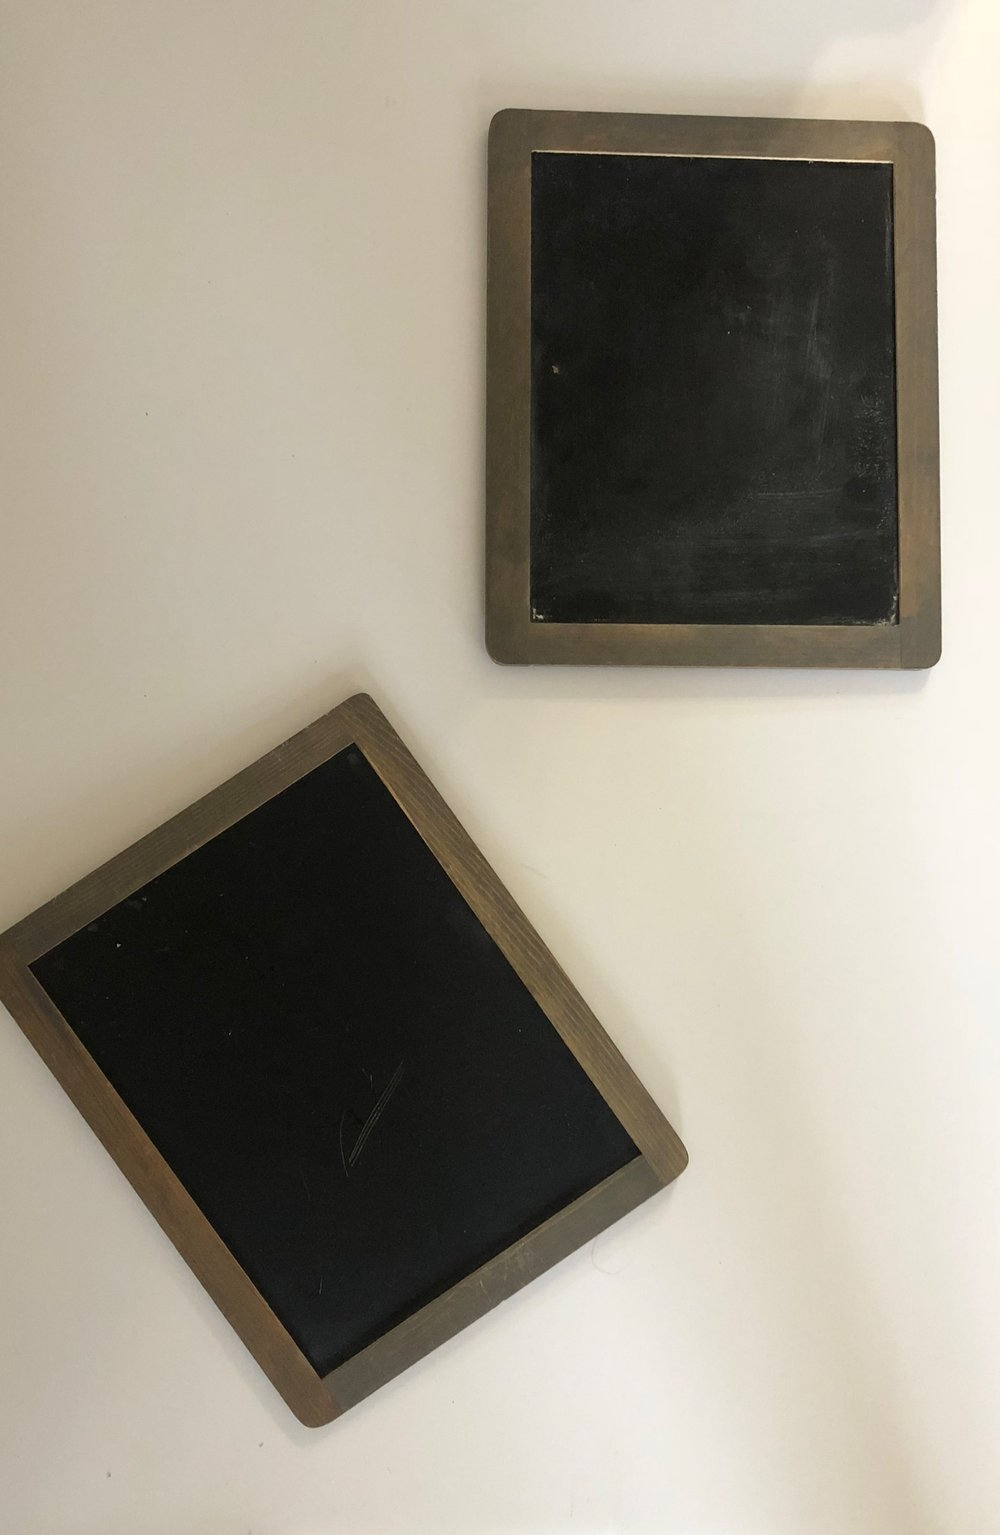 Small chalkboard signs - These must be used with actual chalk - not chalk pens or paint pens.(Quantity: 2)